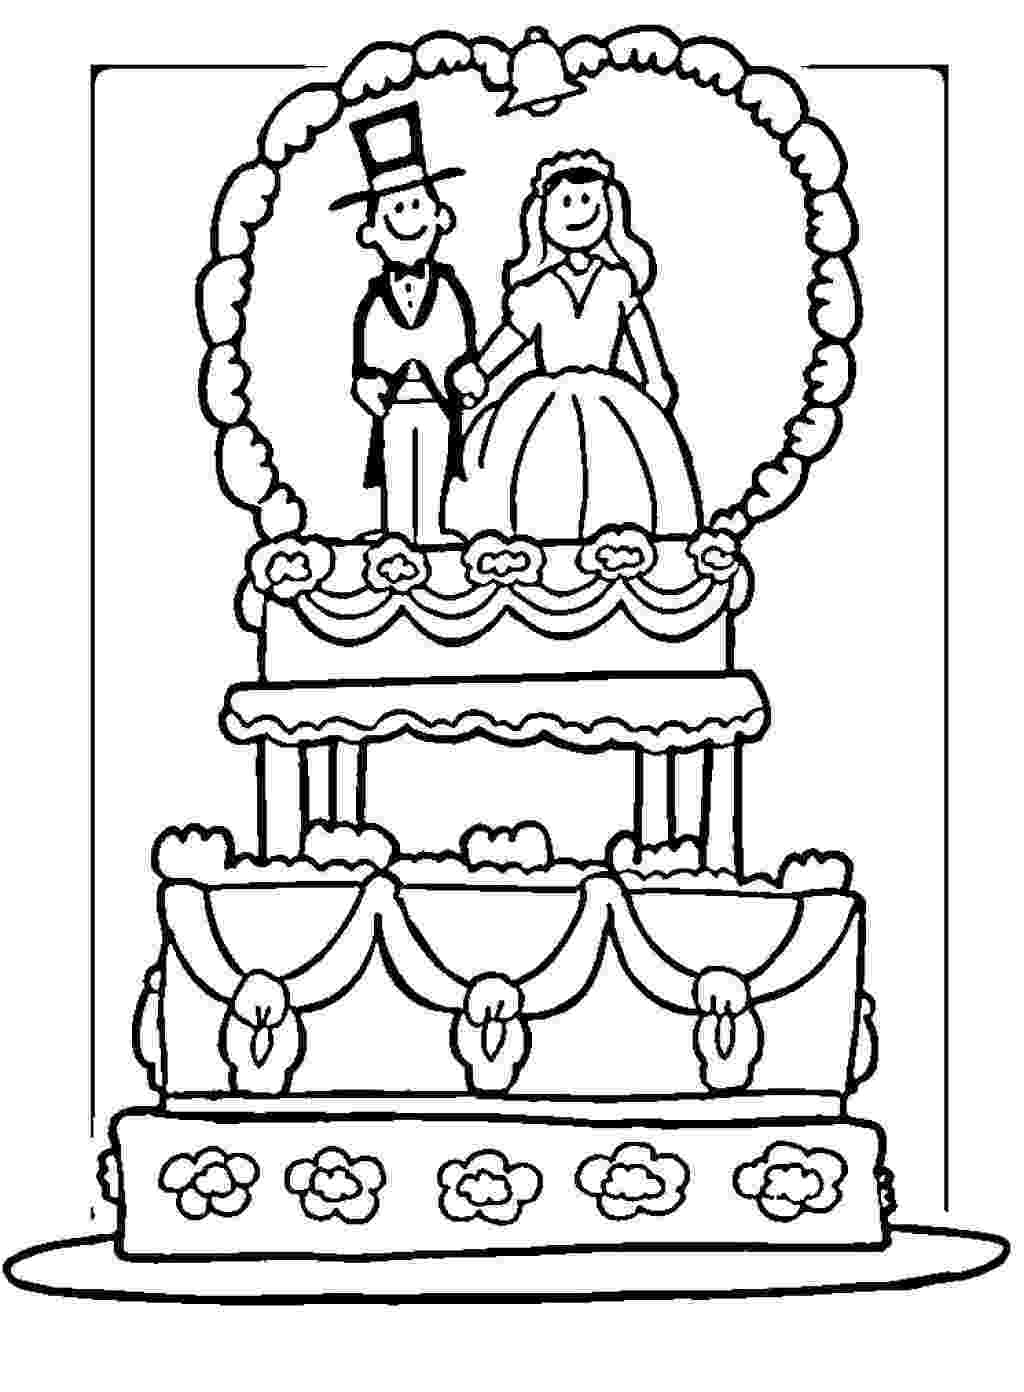 free wedding coloring pages to print printable personalized wedding coloring activity by print to pages wedding coloring free